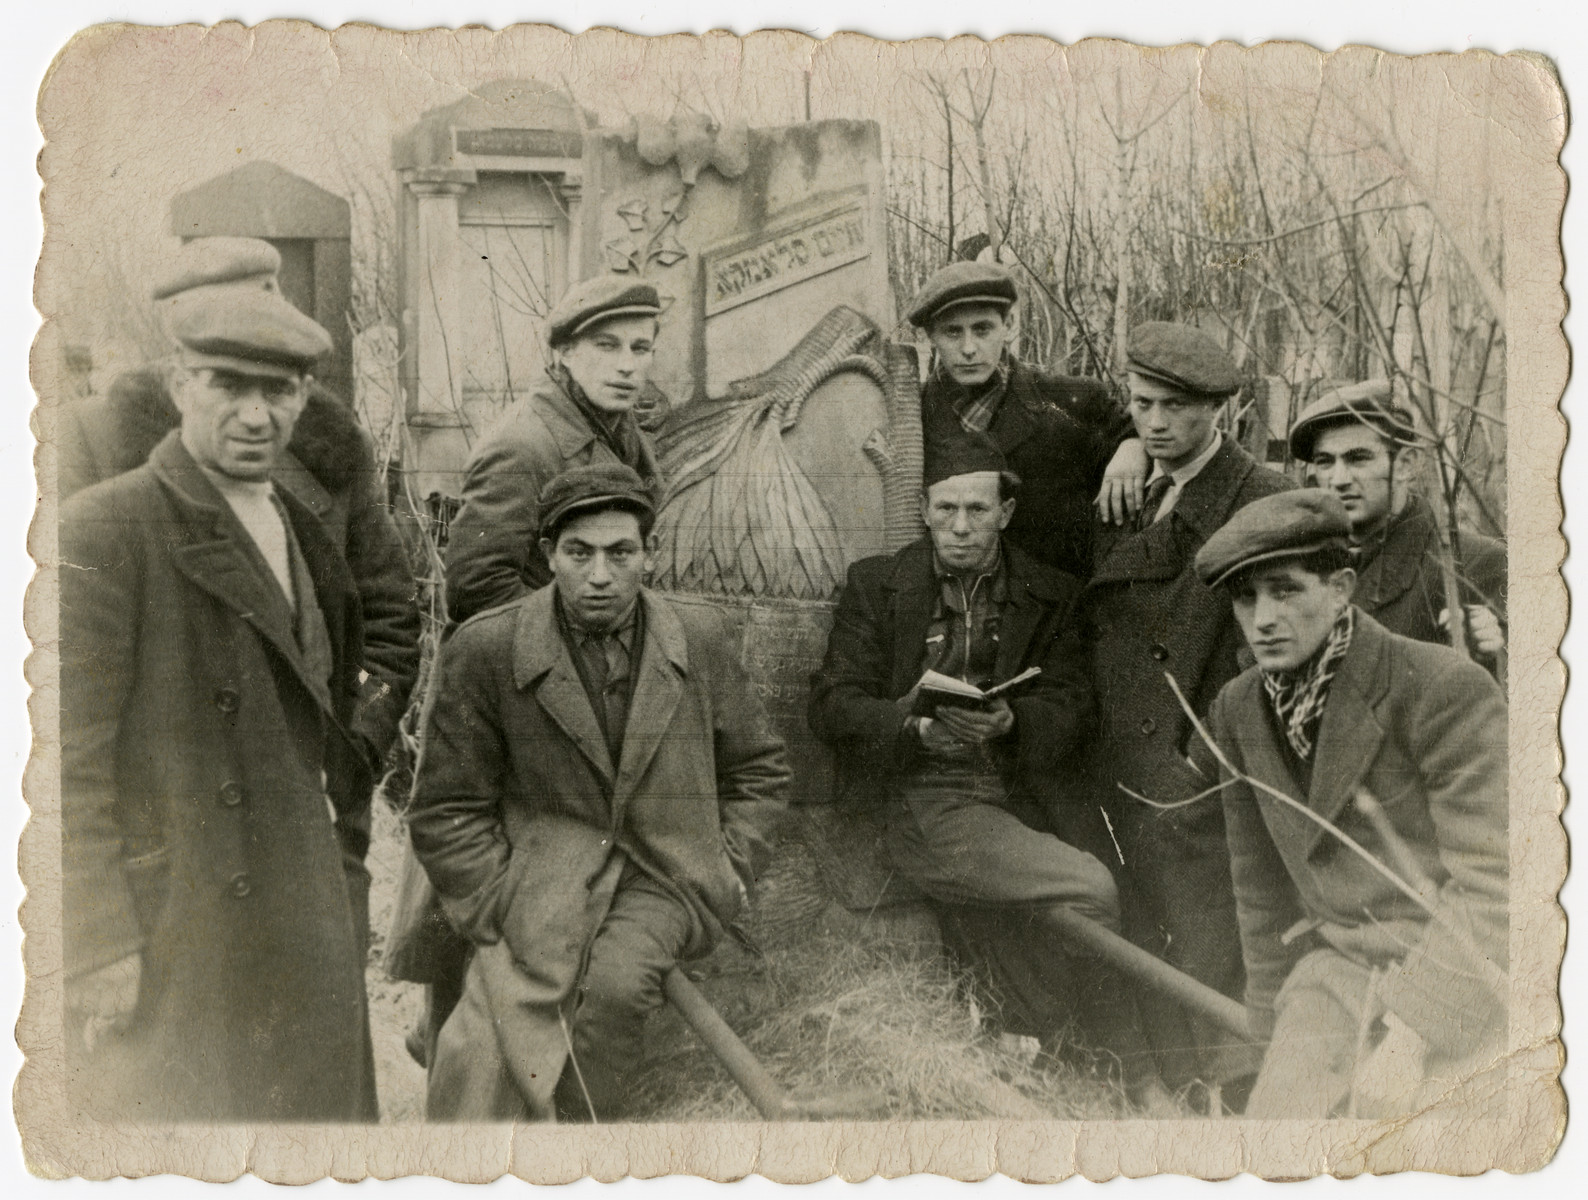 Jewish survivors pray in the desecrated Jewish cemetery near Lublin.  Leon Korn is standing in the back second to the right.